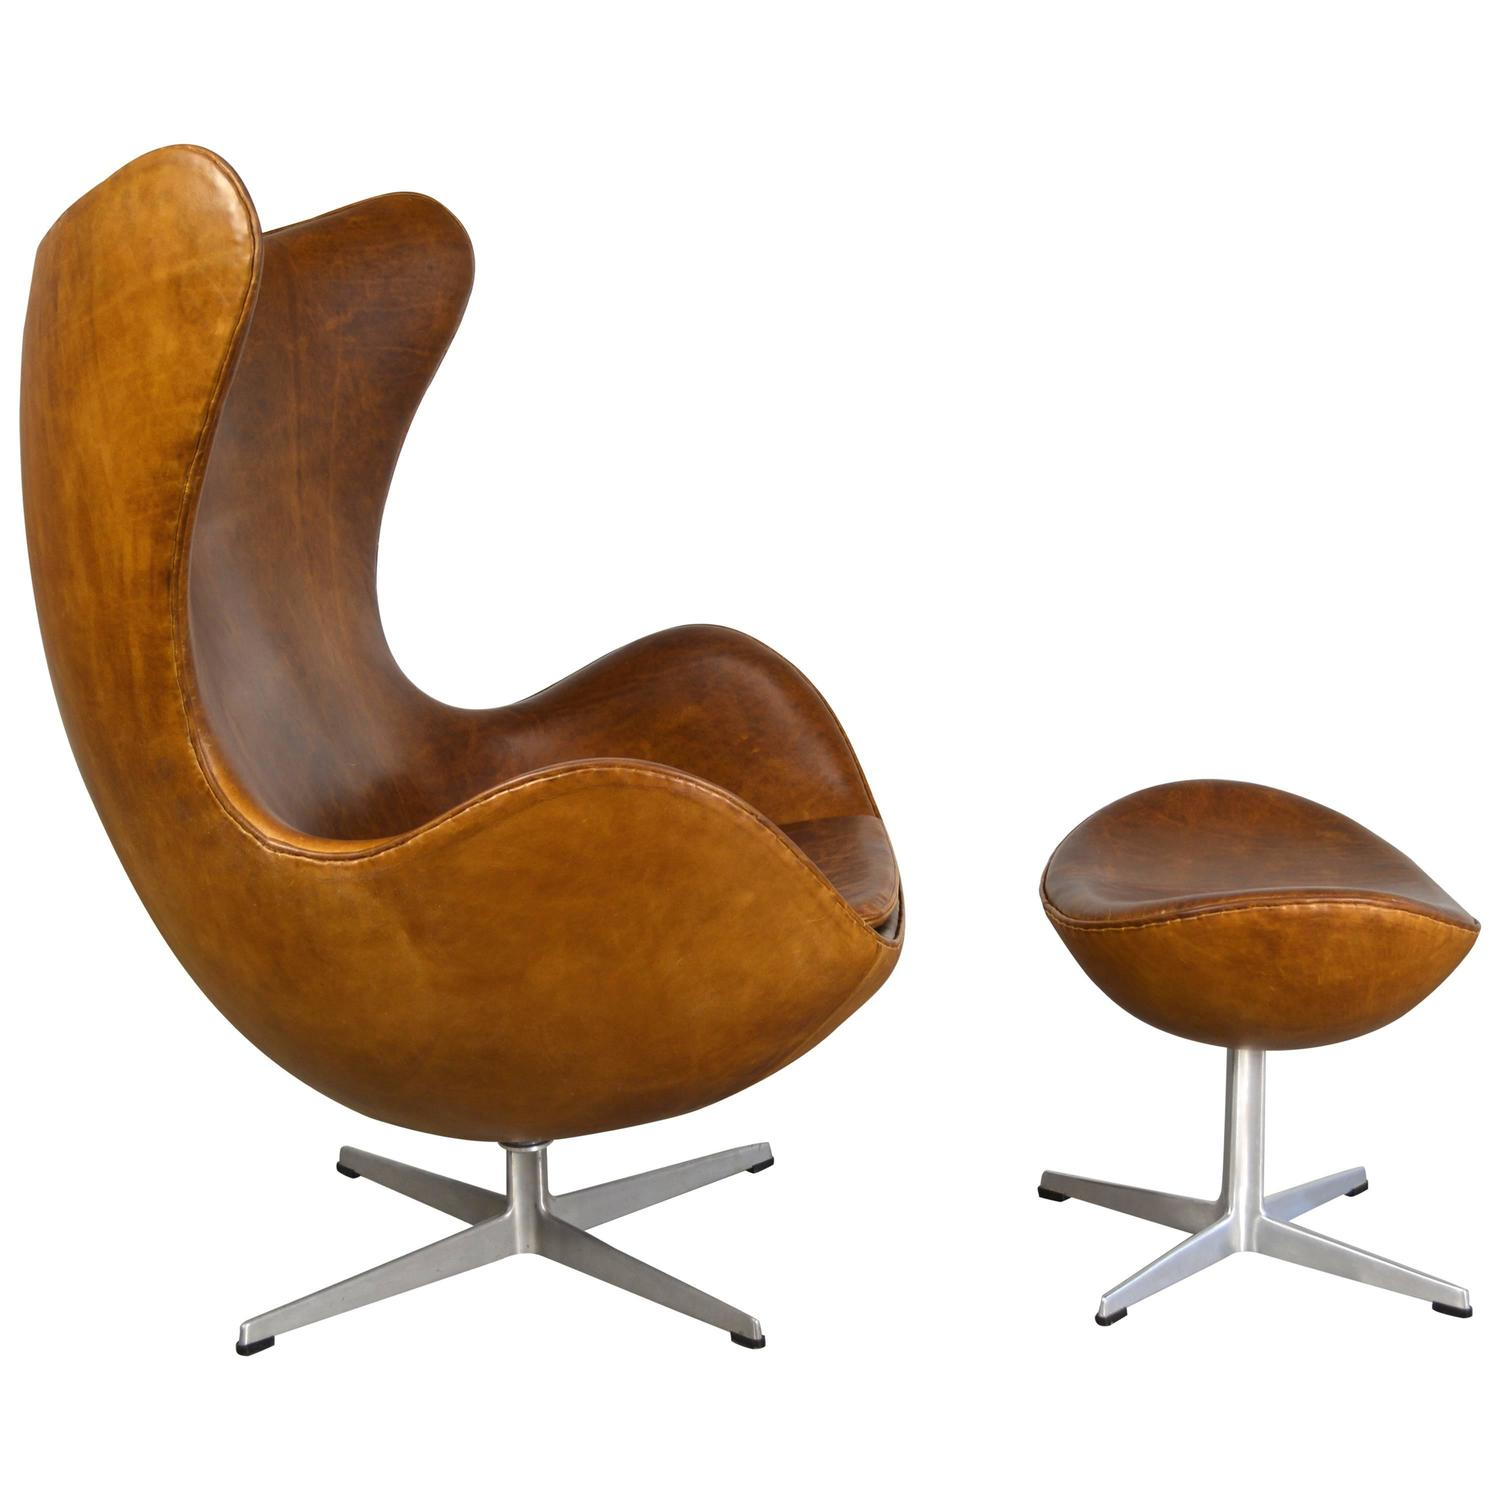 Chair Egg Arne Jacobsen Egg Chair And Ottoman At 1stdibs